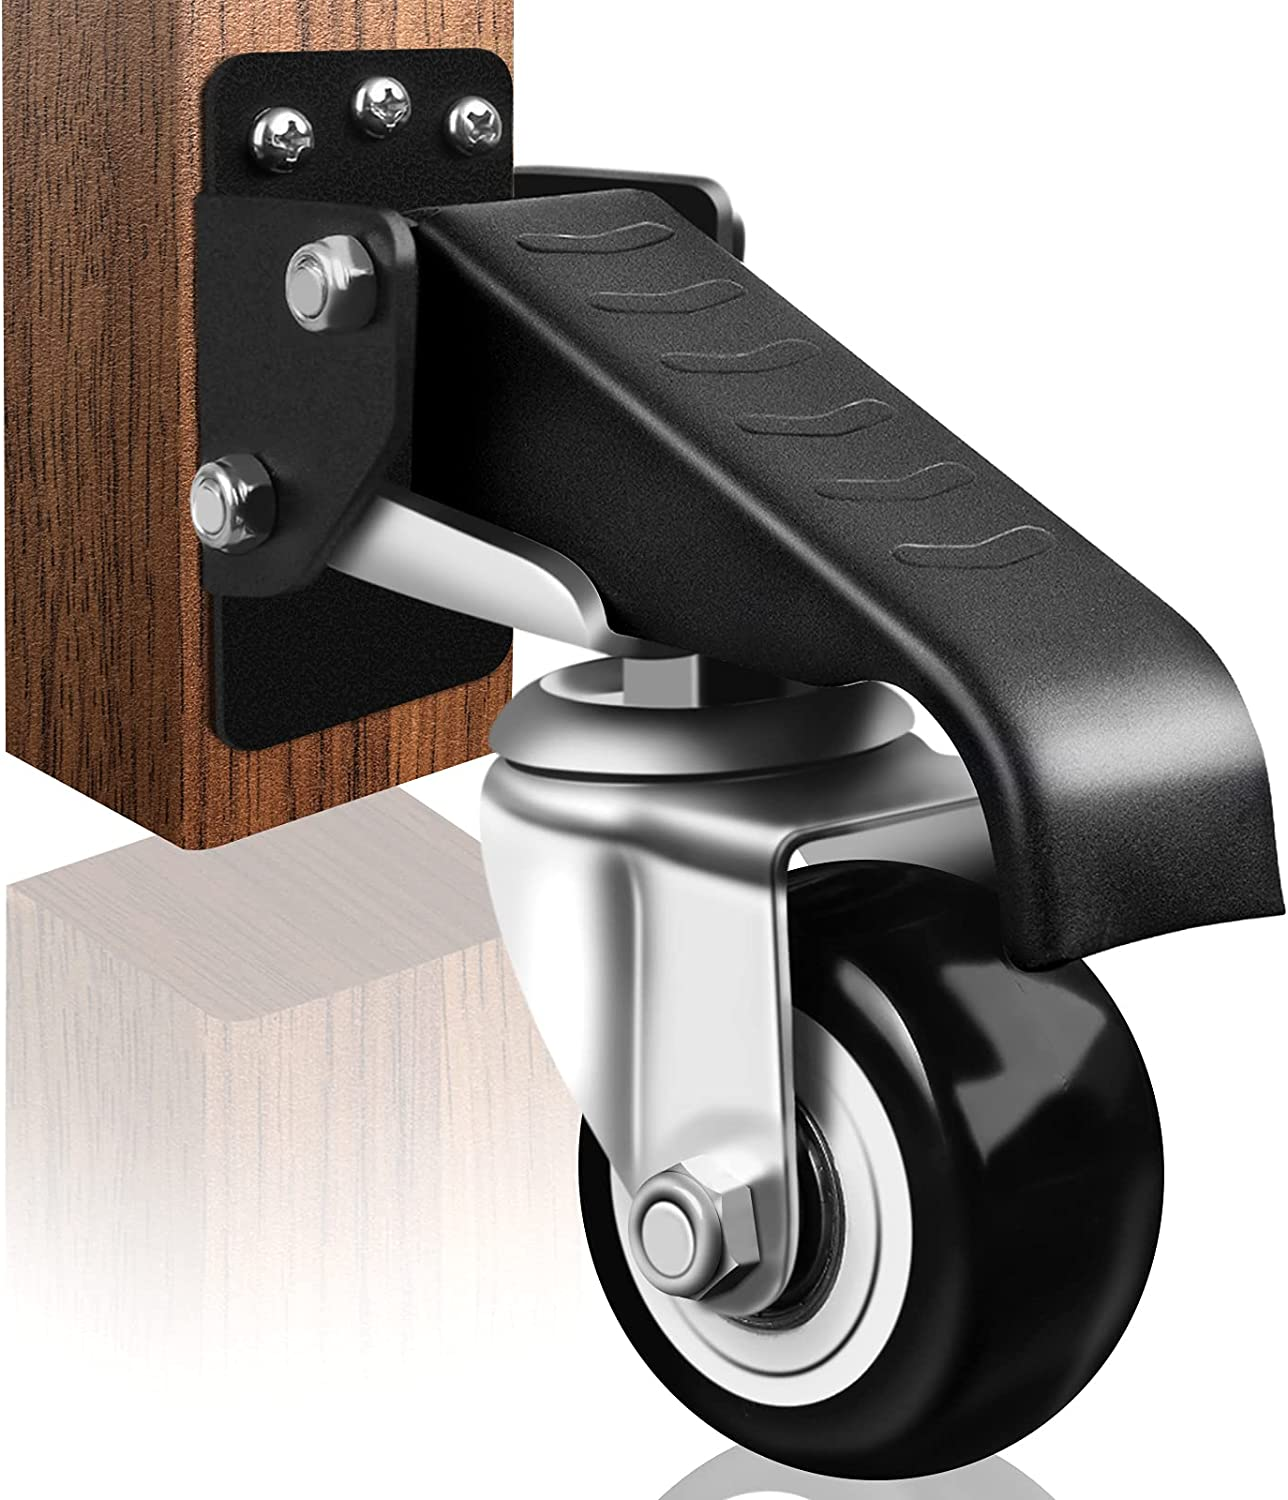 Spasm price SPACECARE Workbench wholesale Casters Heavy Retractable Casters, Duty